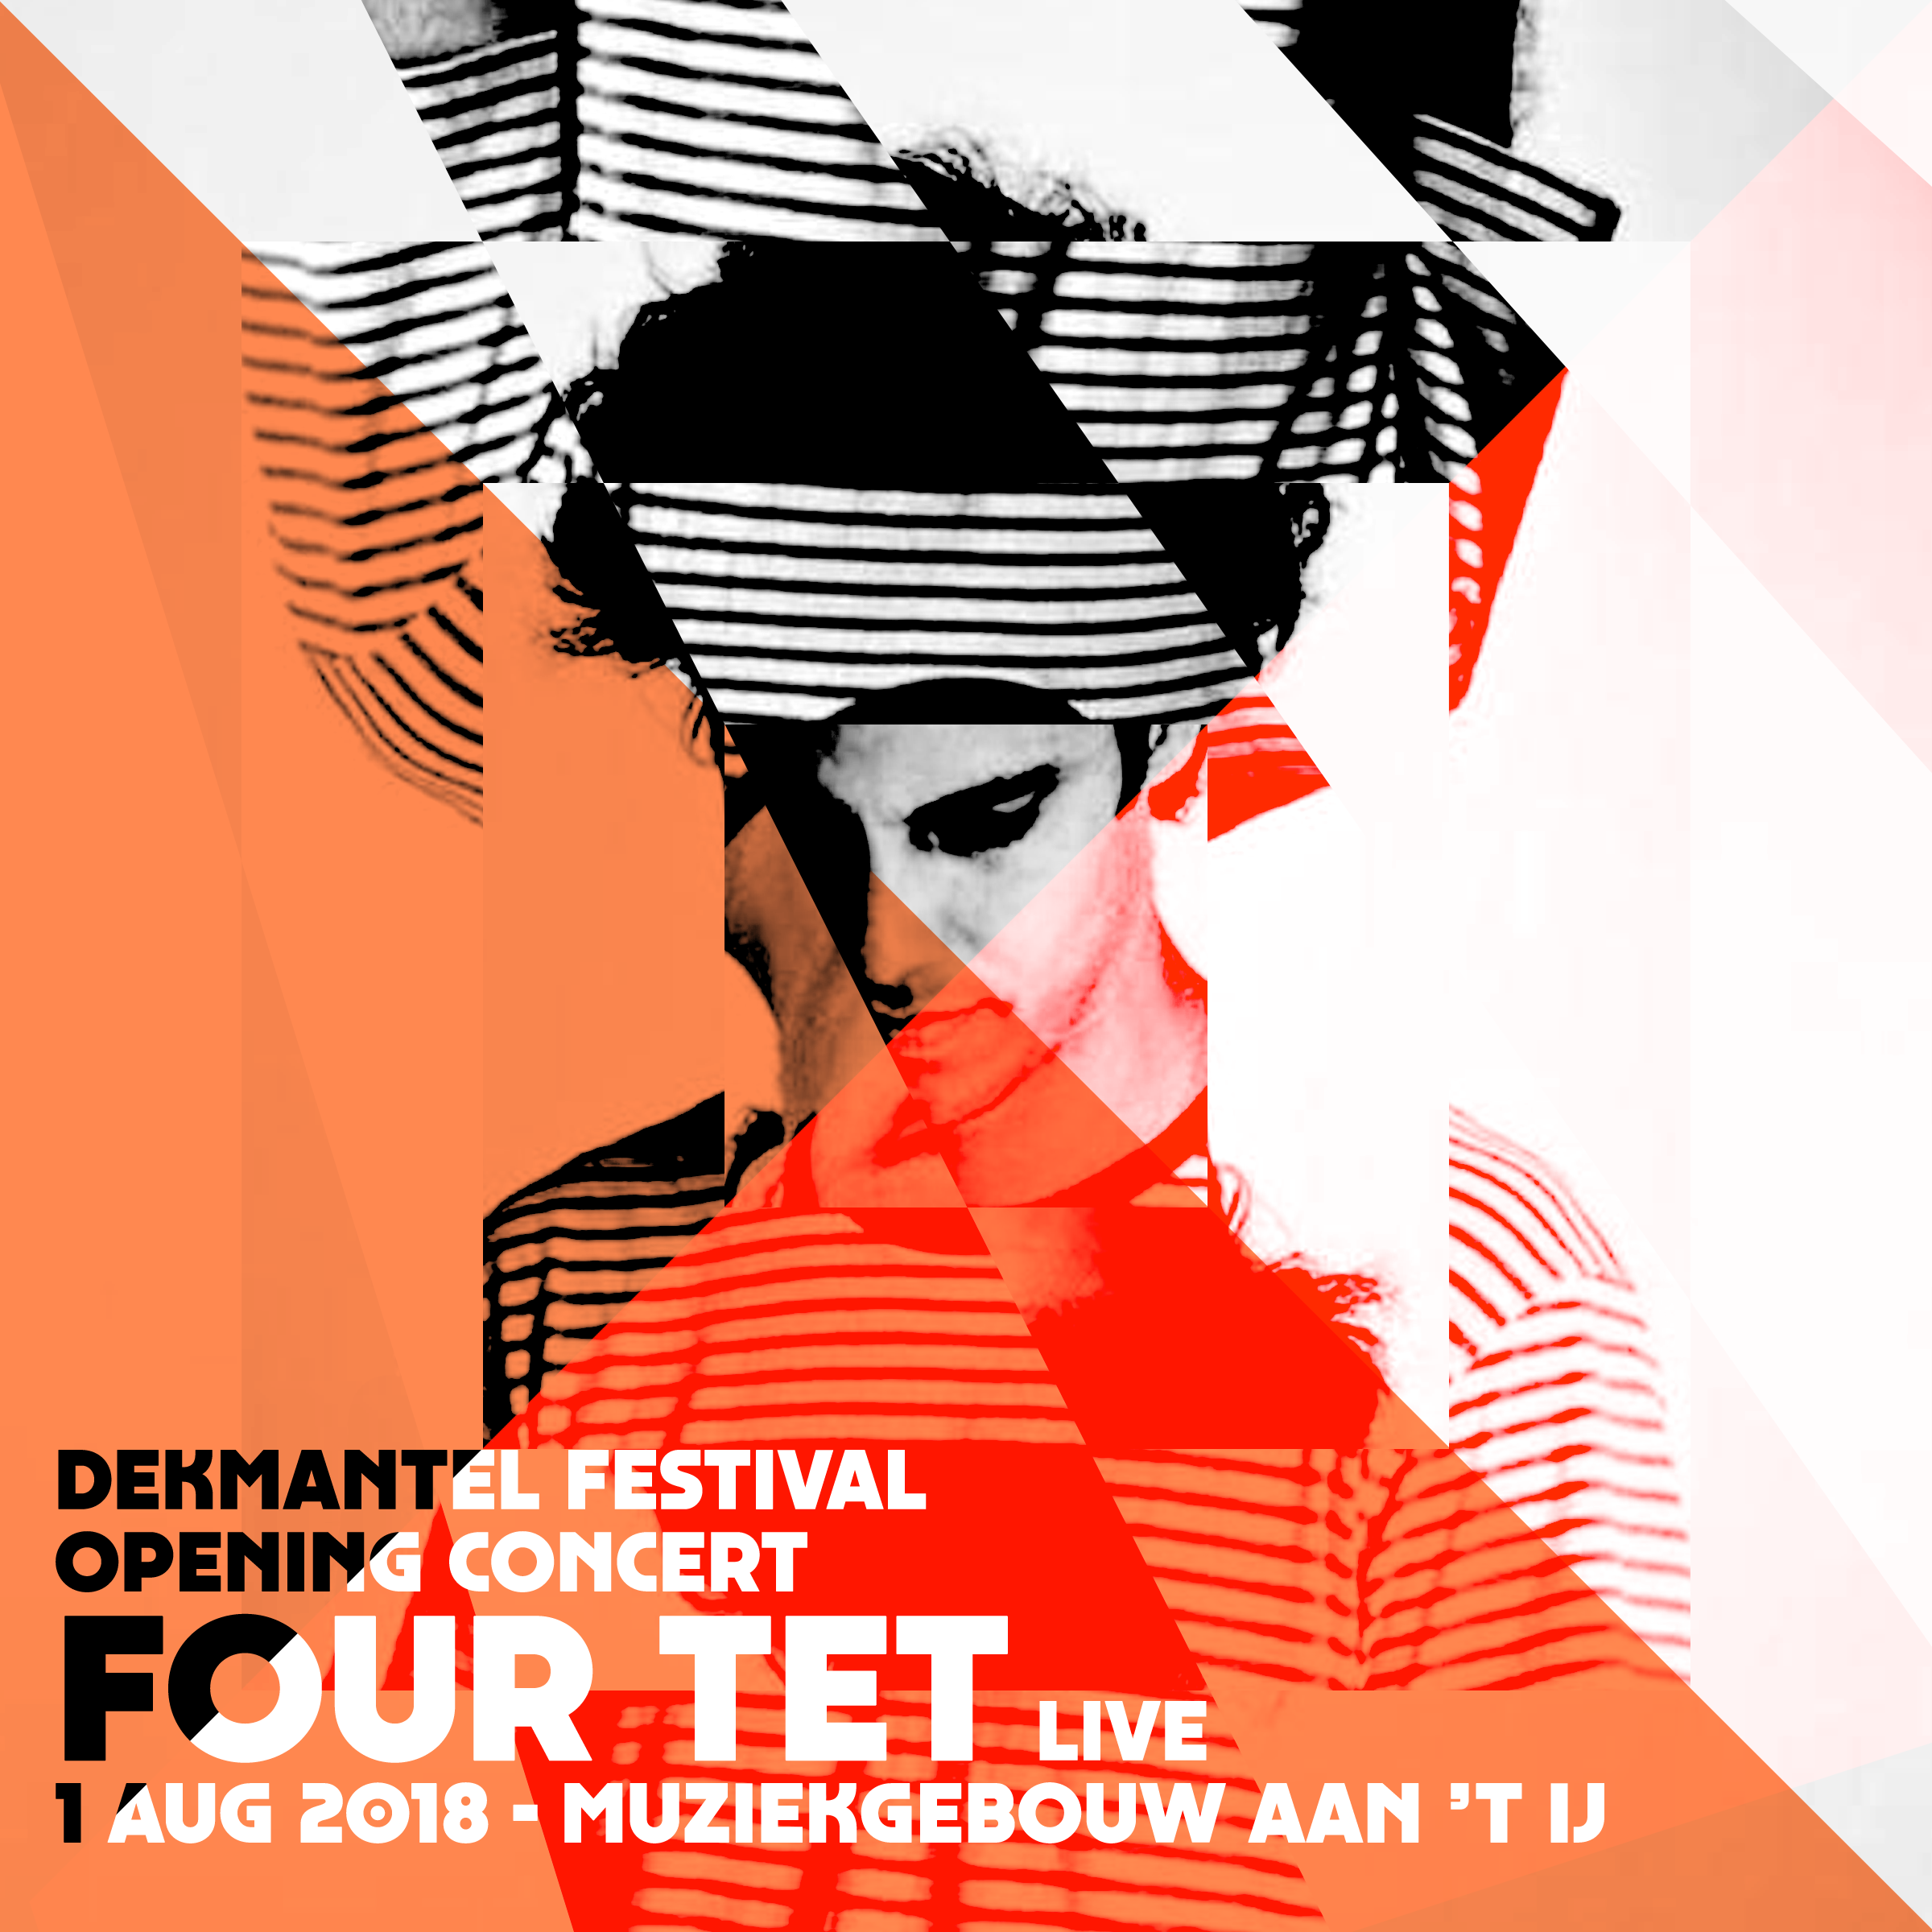 Colorado-DKMNTL18-instagram-FourTet.png